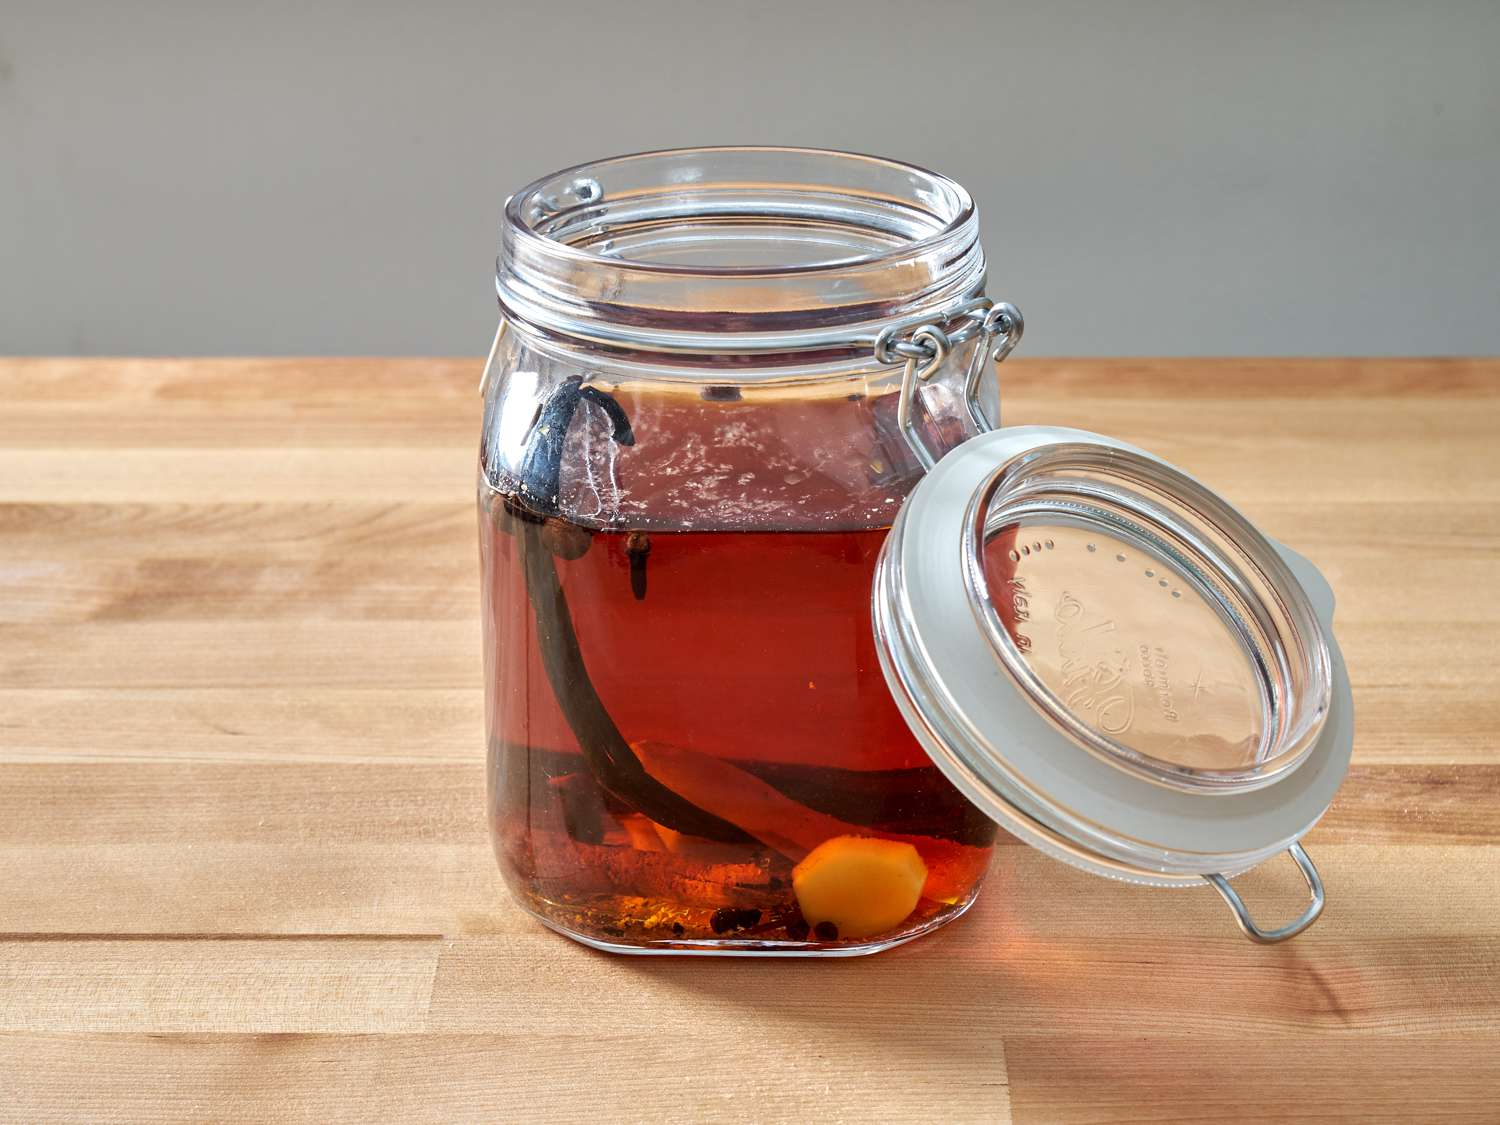 a jar filled with ingredients to make spiced rum